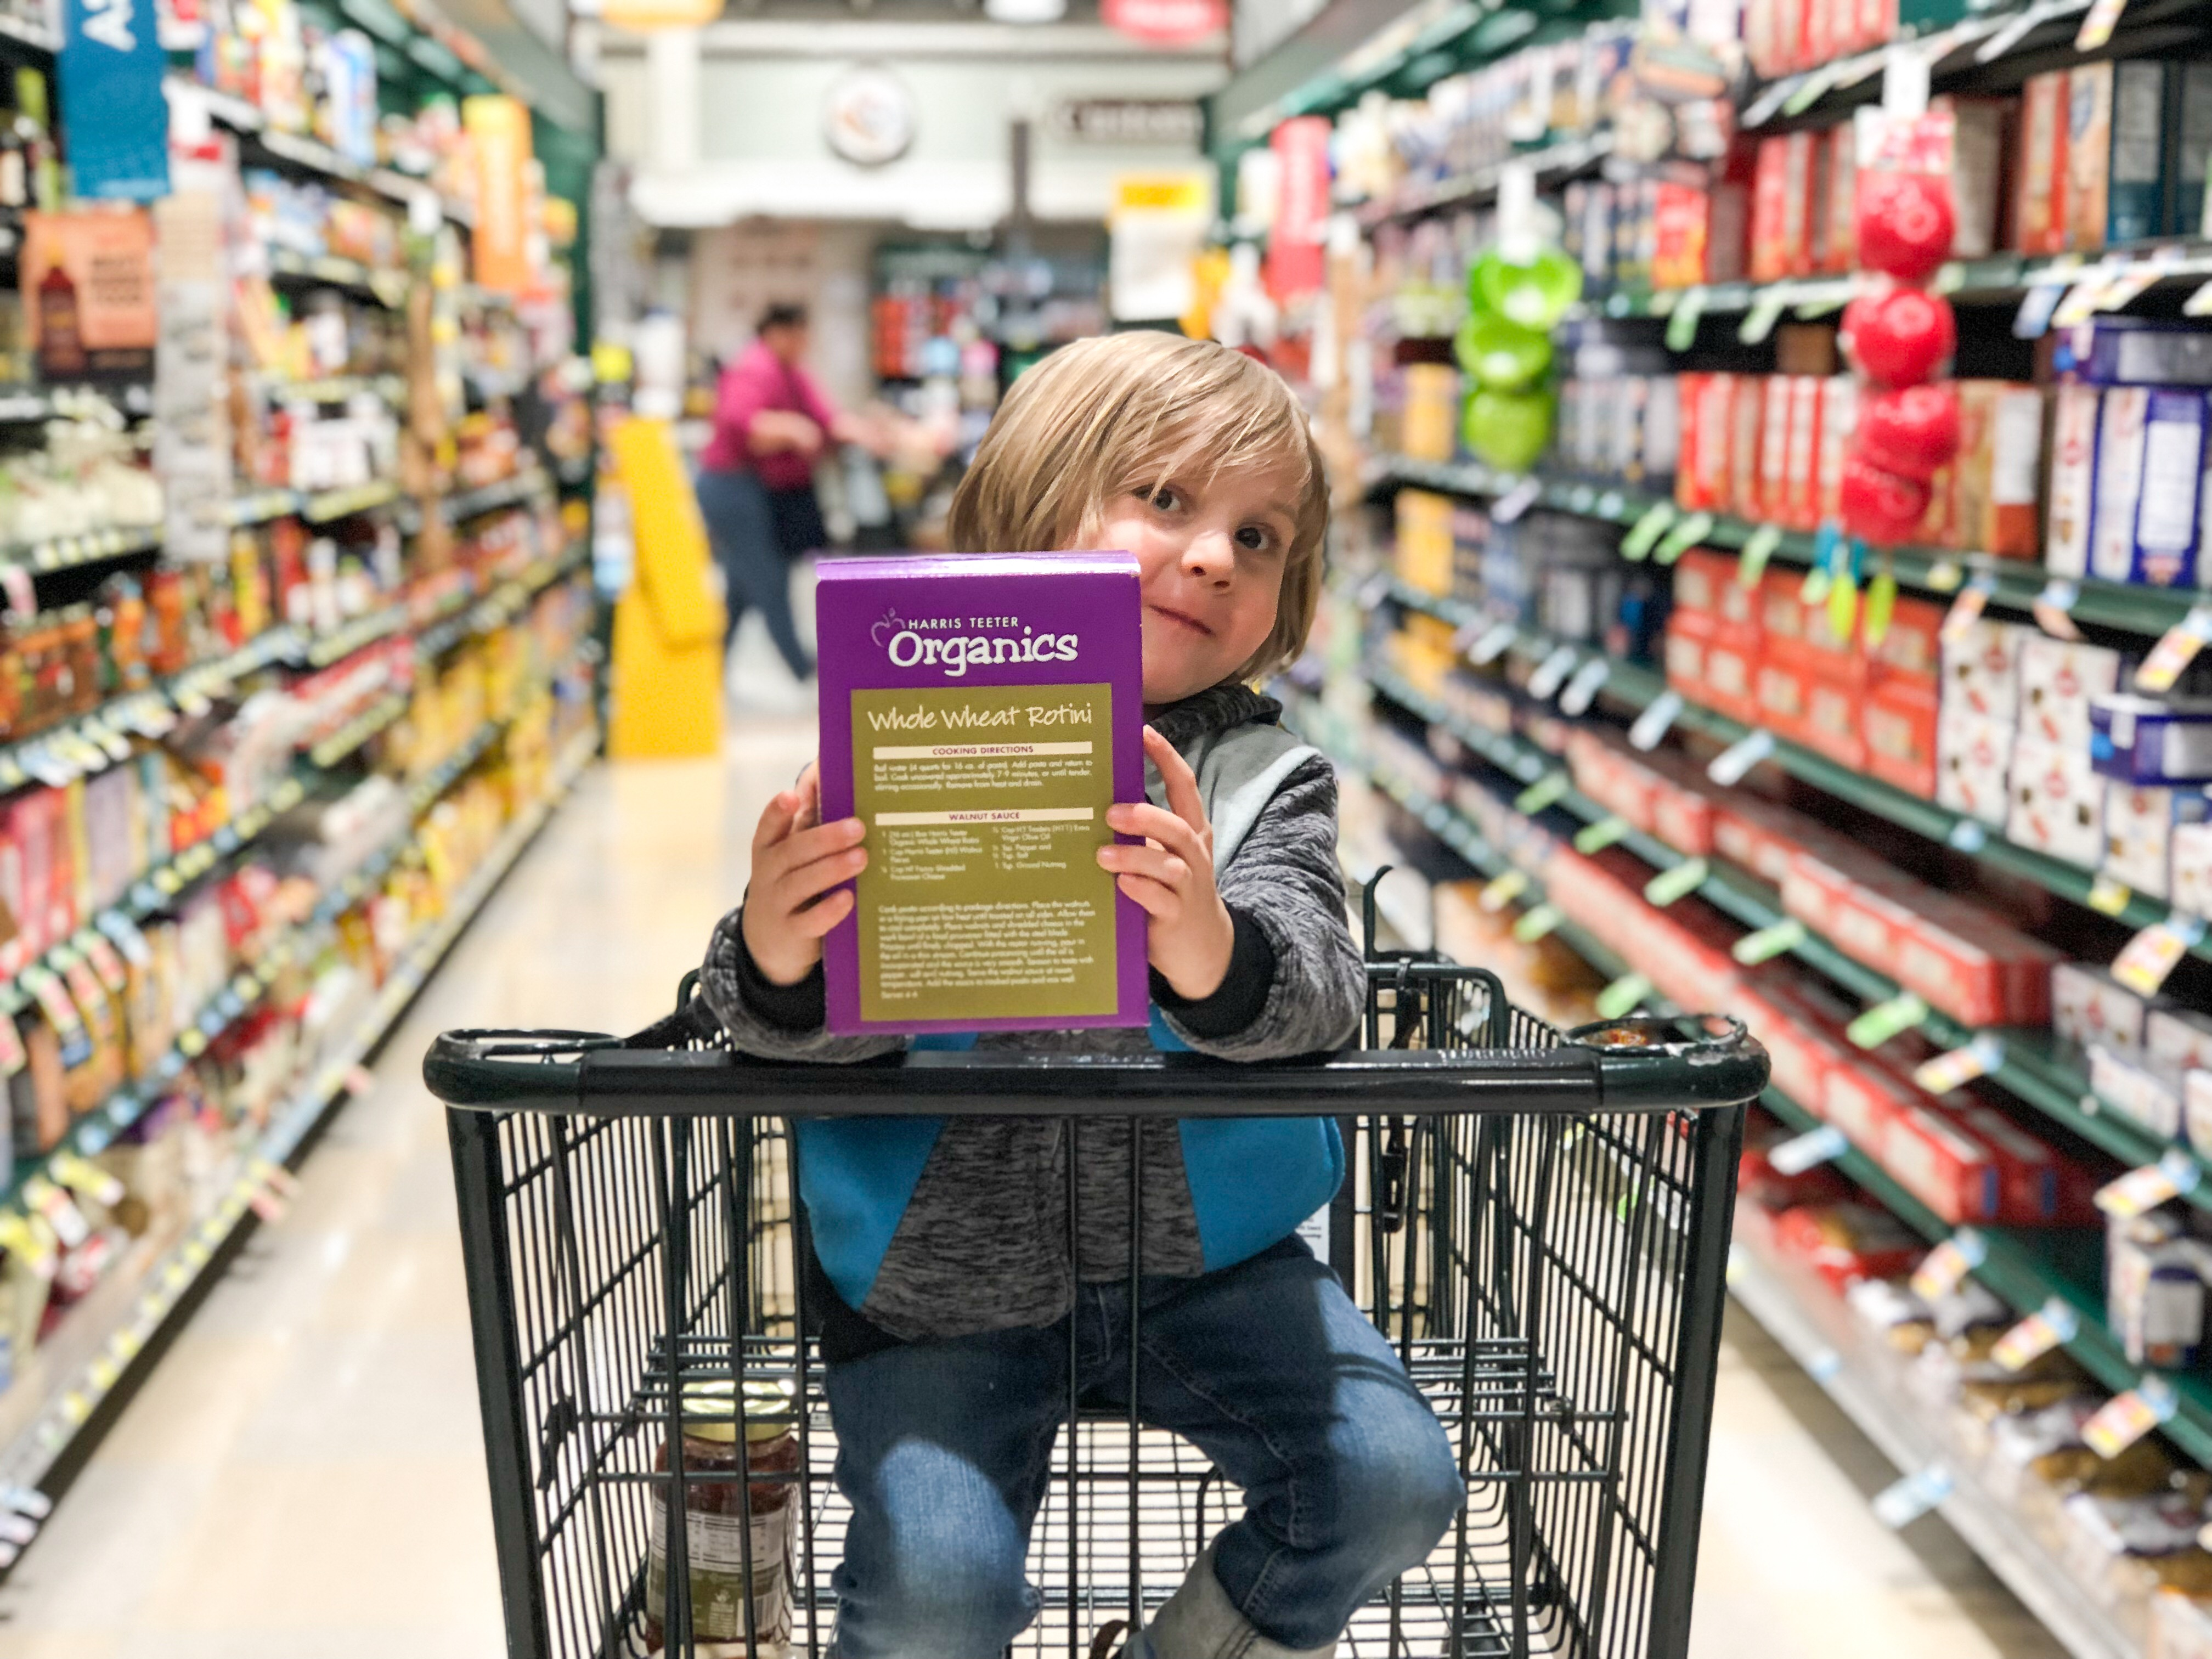 mom blog dad blog healthy family locally sourced eating healthy variety purple low price tag items on every isle non-GMO nutrient rich trusted grocer Virginia California traveling family food recipes early learning homeschooling